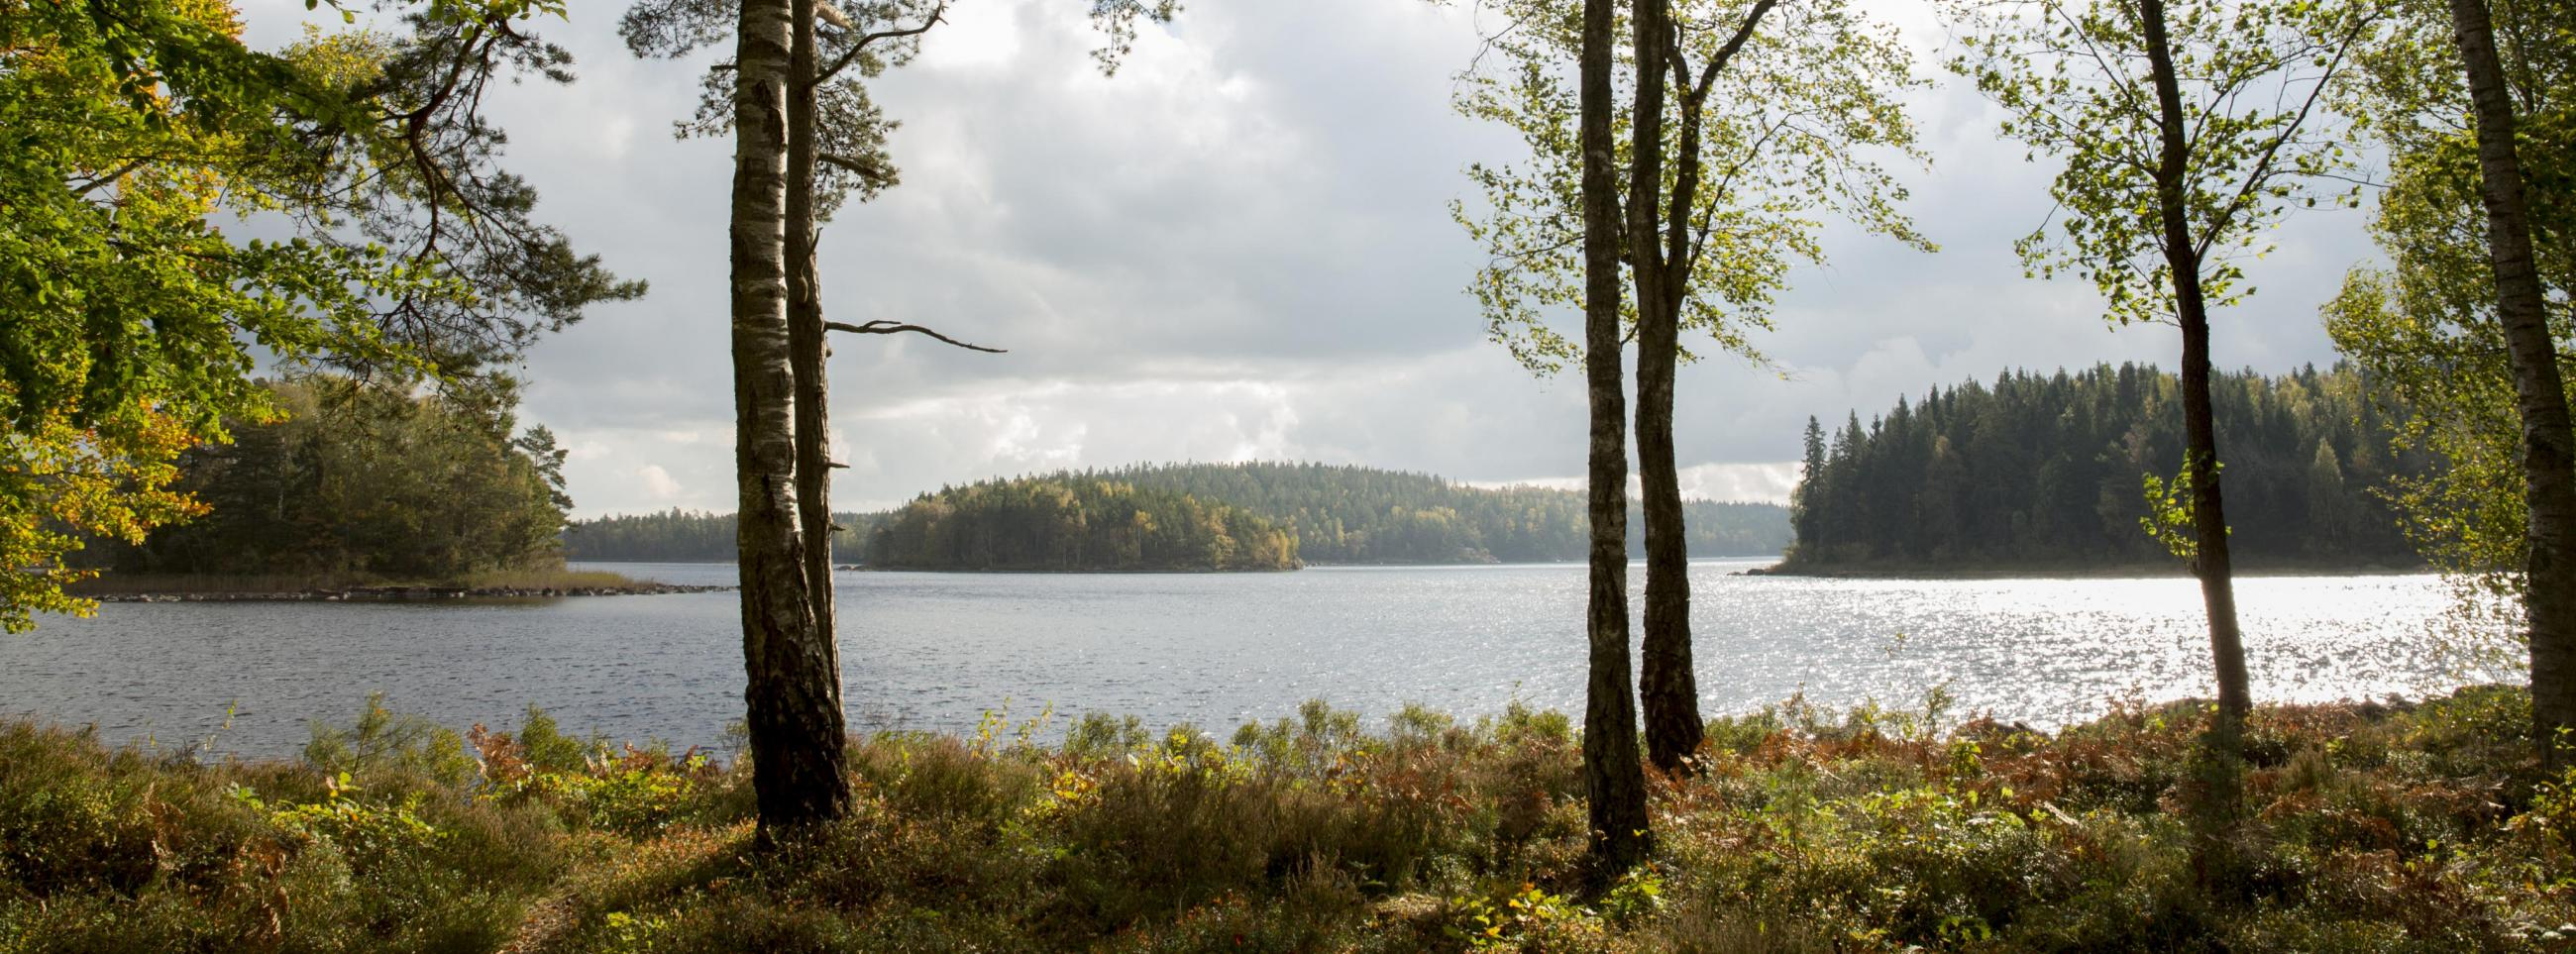 Lake Immeln